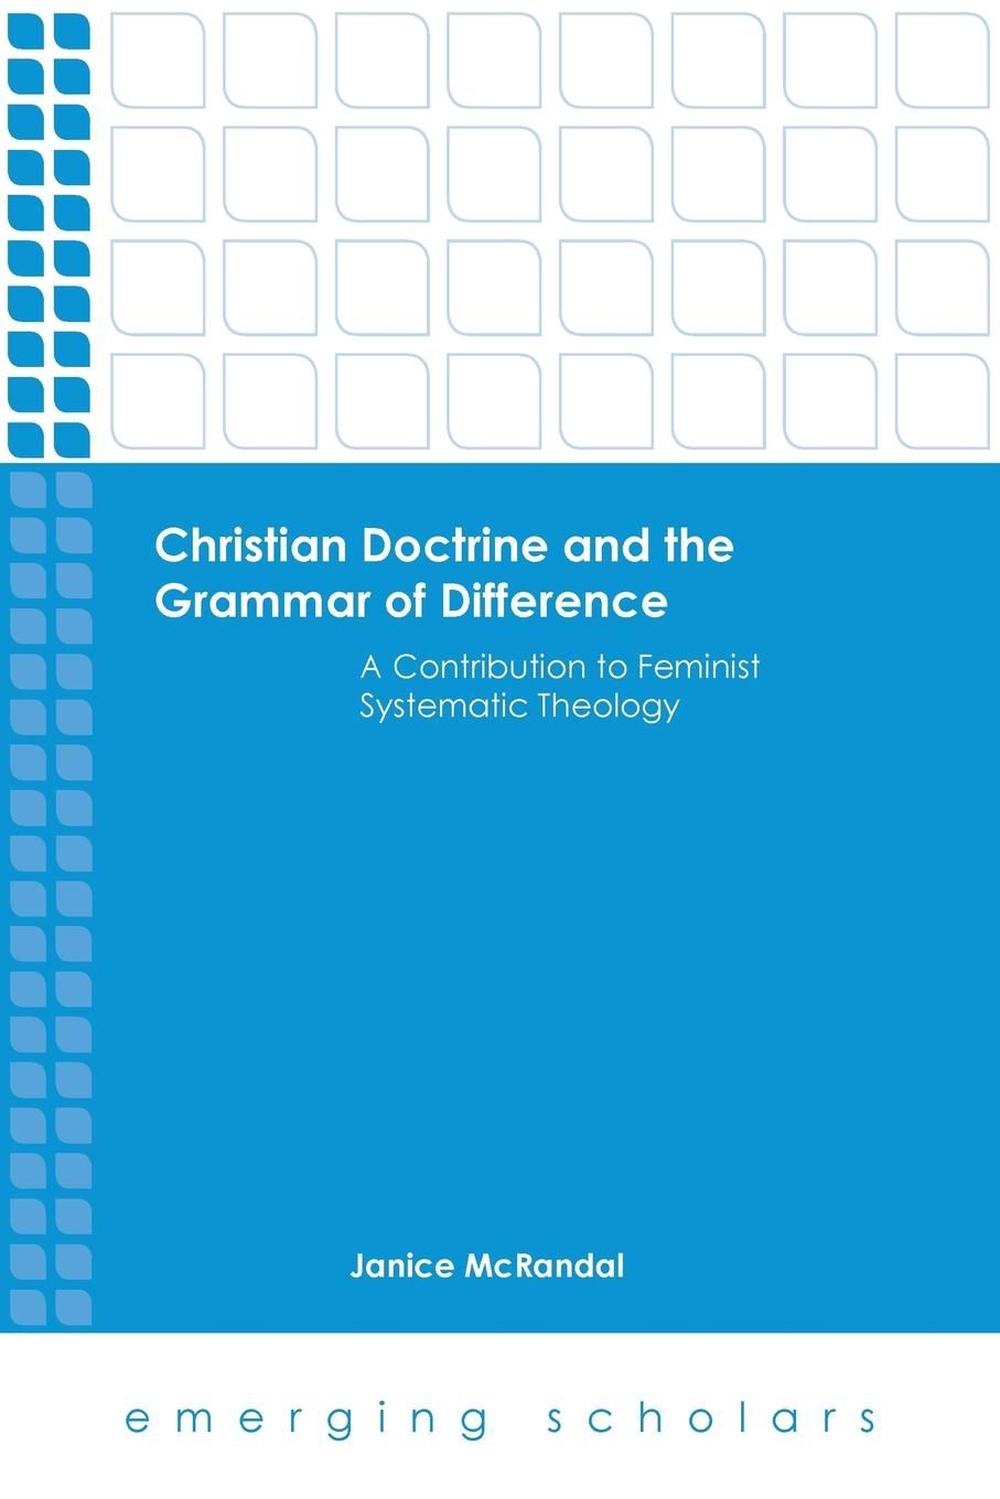 Christian Doctrine and the Grammar of Difference: A Contribution to Feminist Systematic Theology (Emerging Scholars)